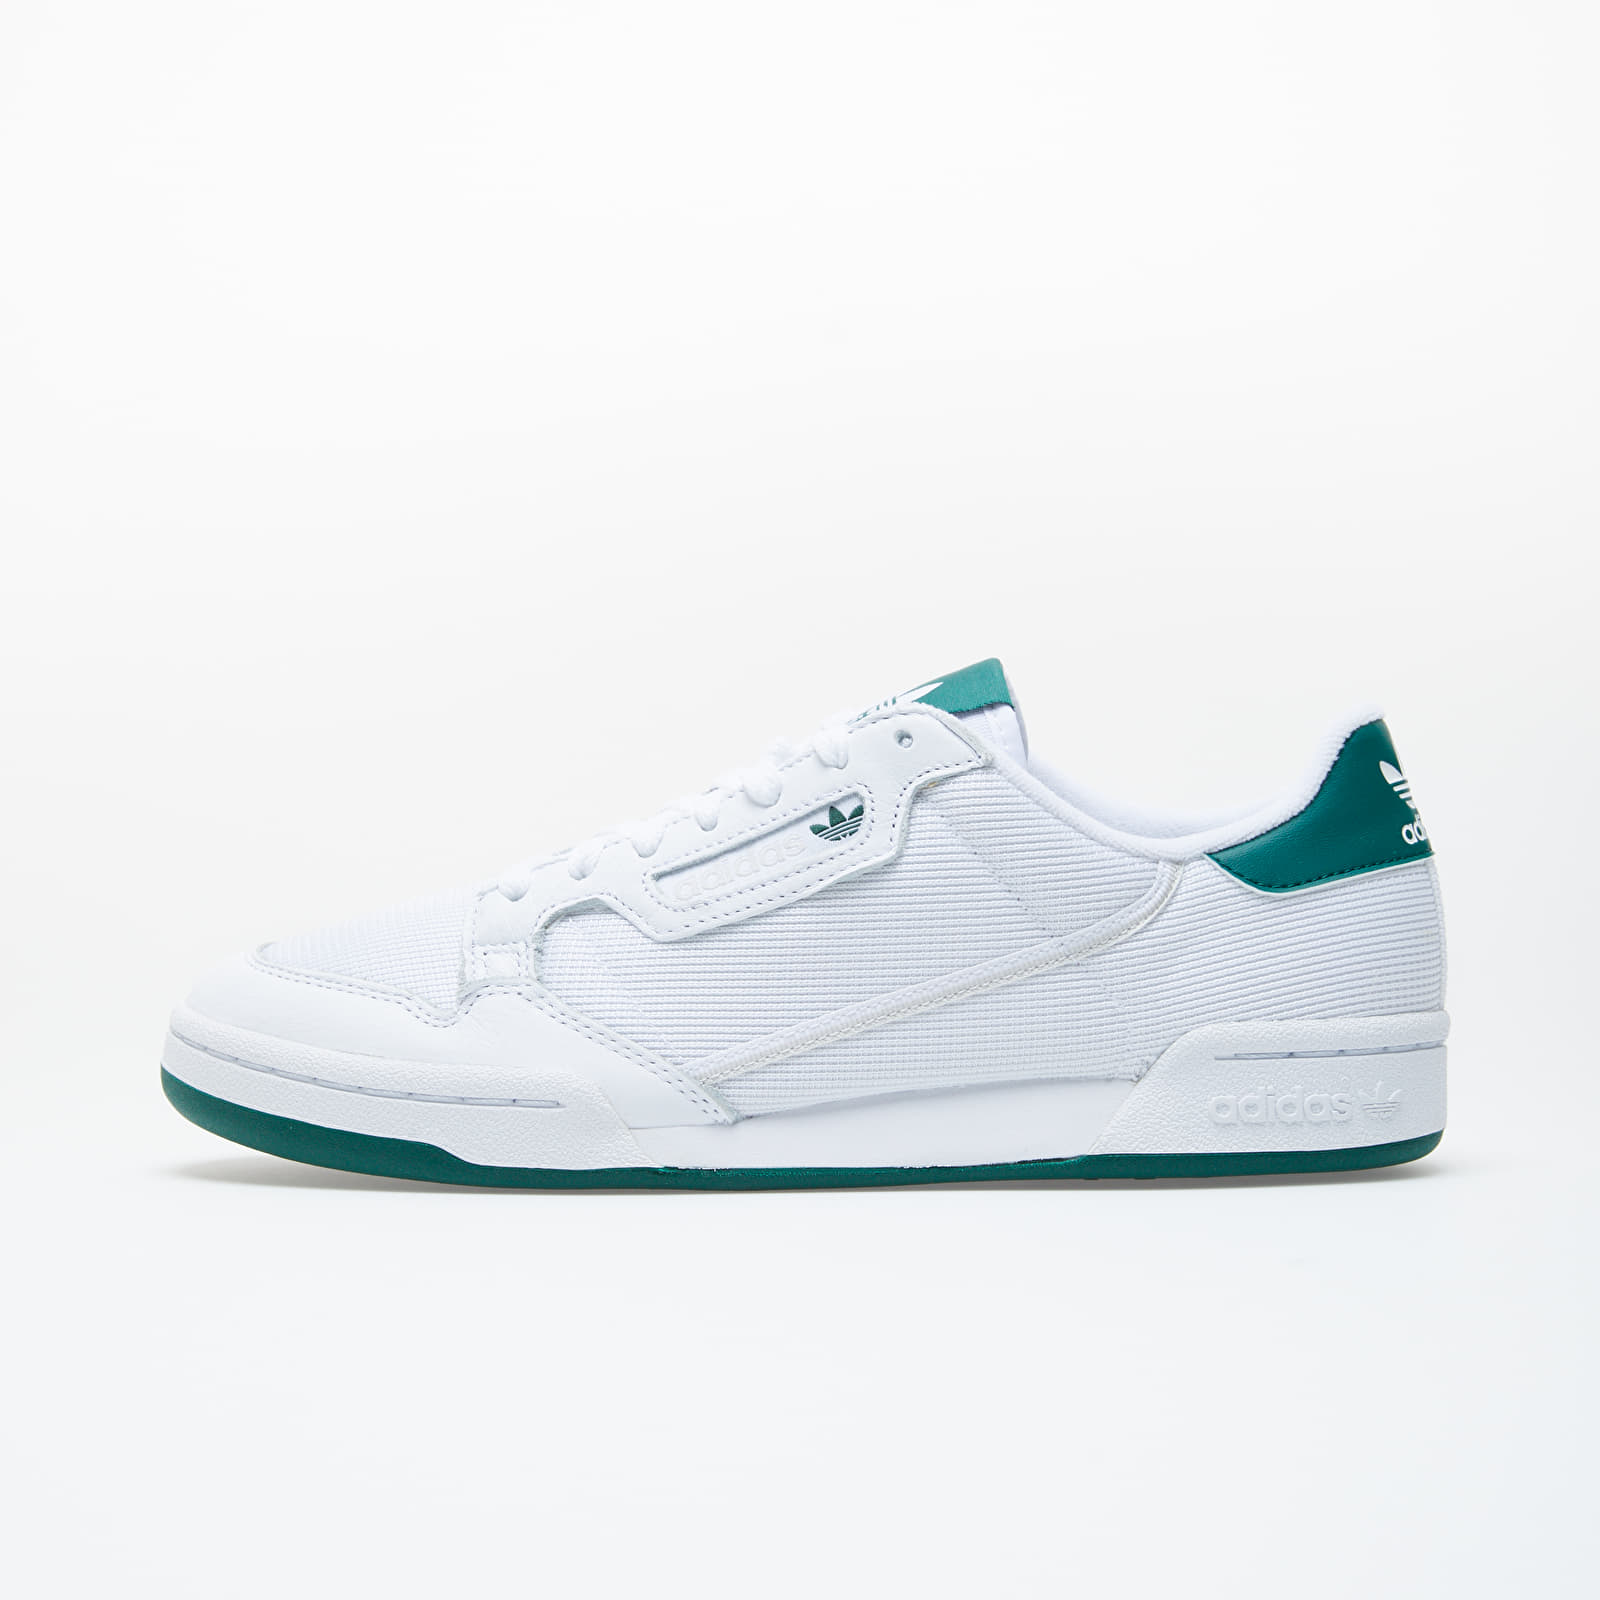 Men's shoes adidas Continental 80 Ftw White/ Grey One/ Core Green